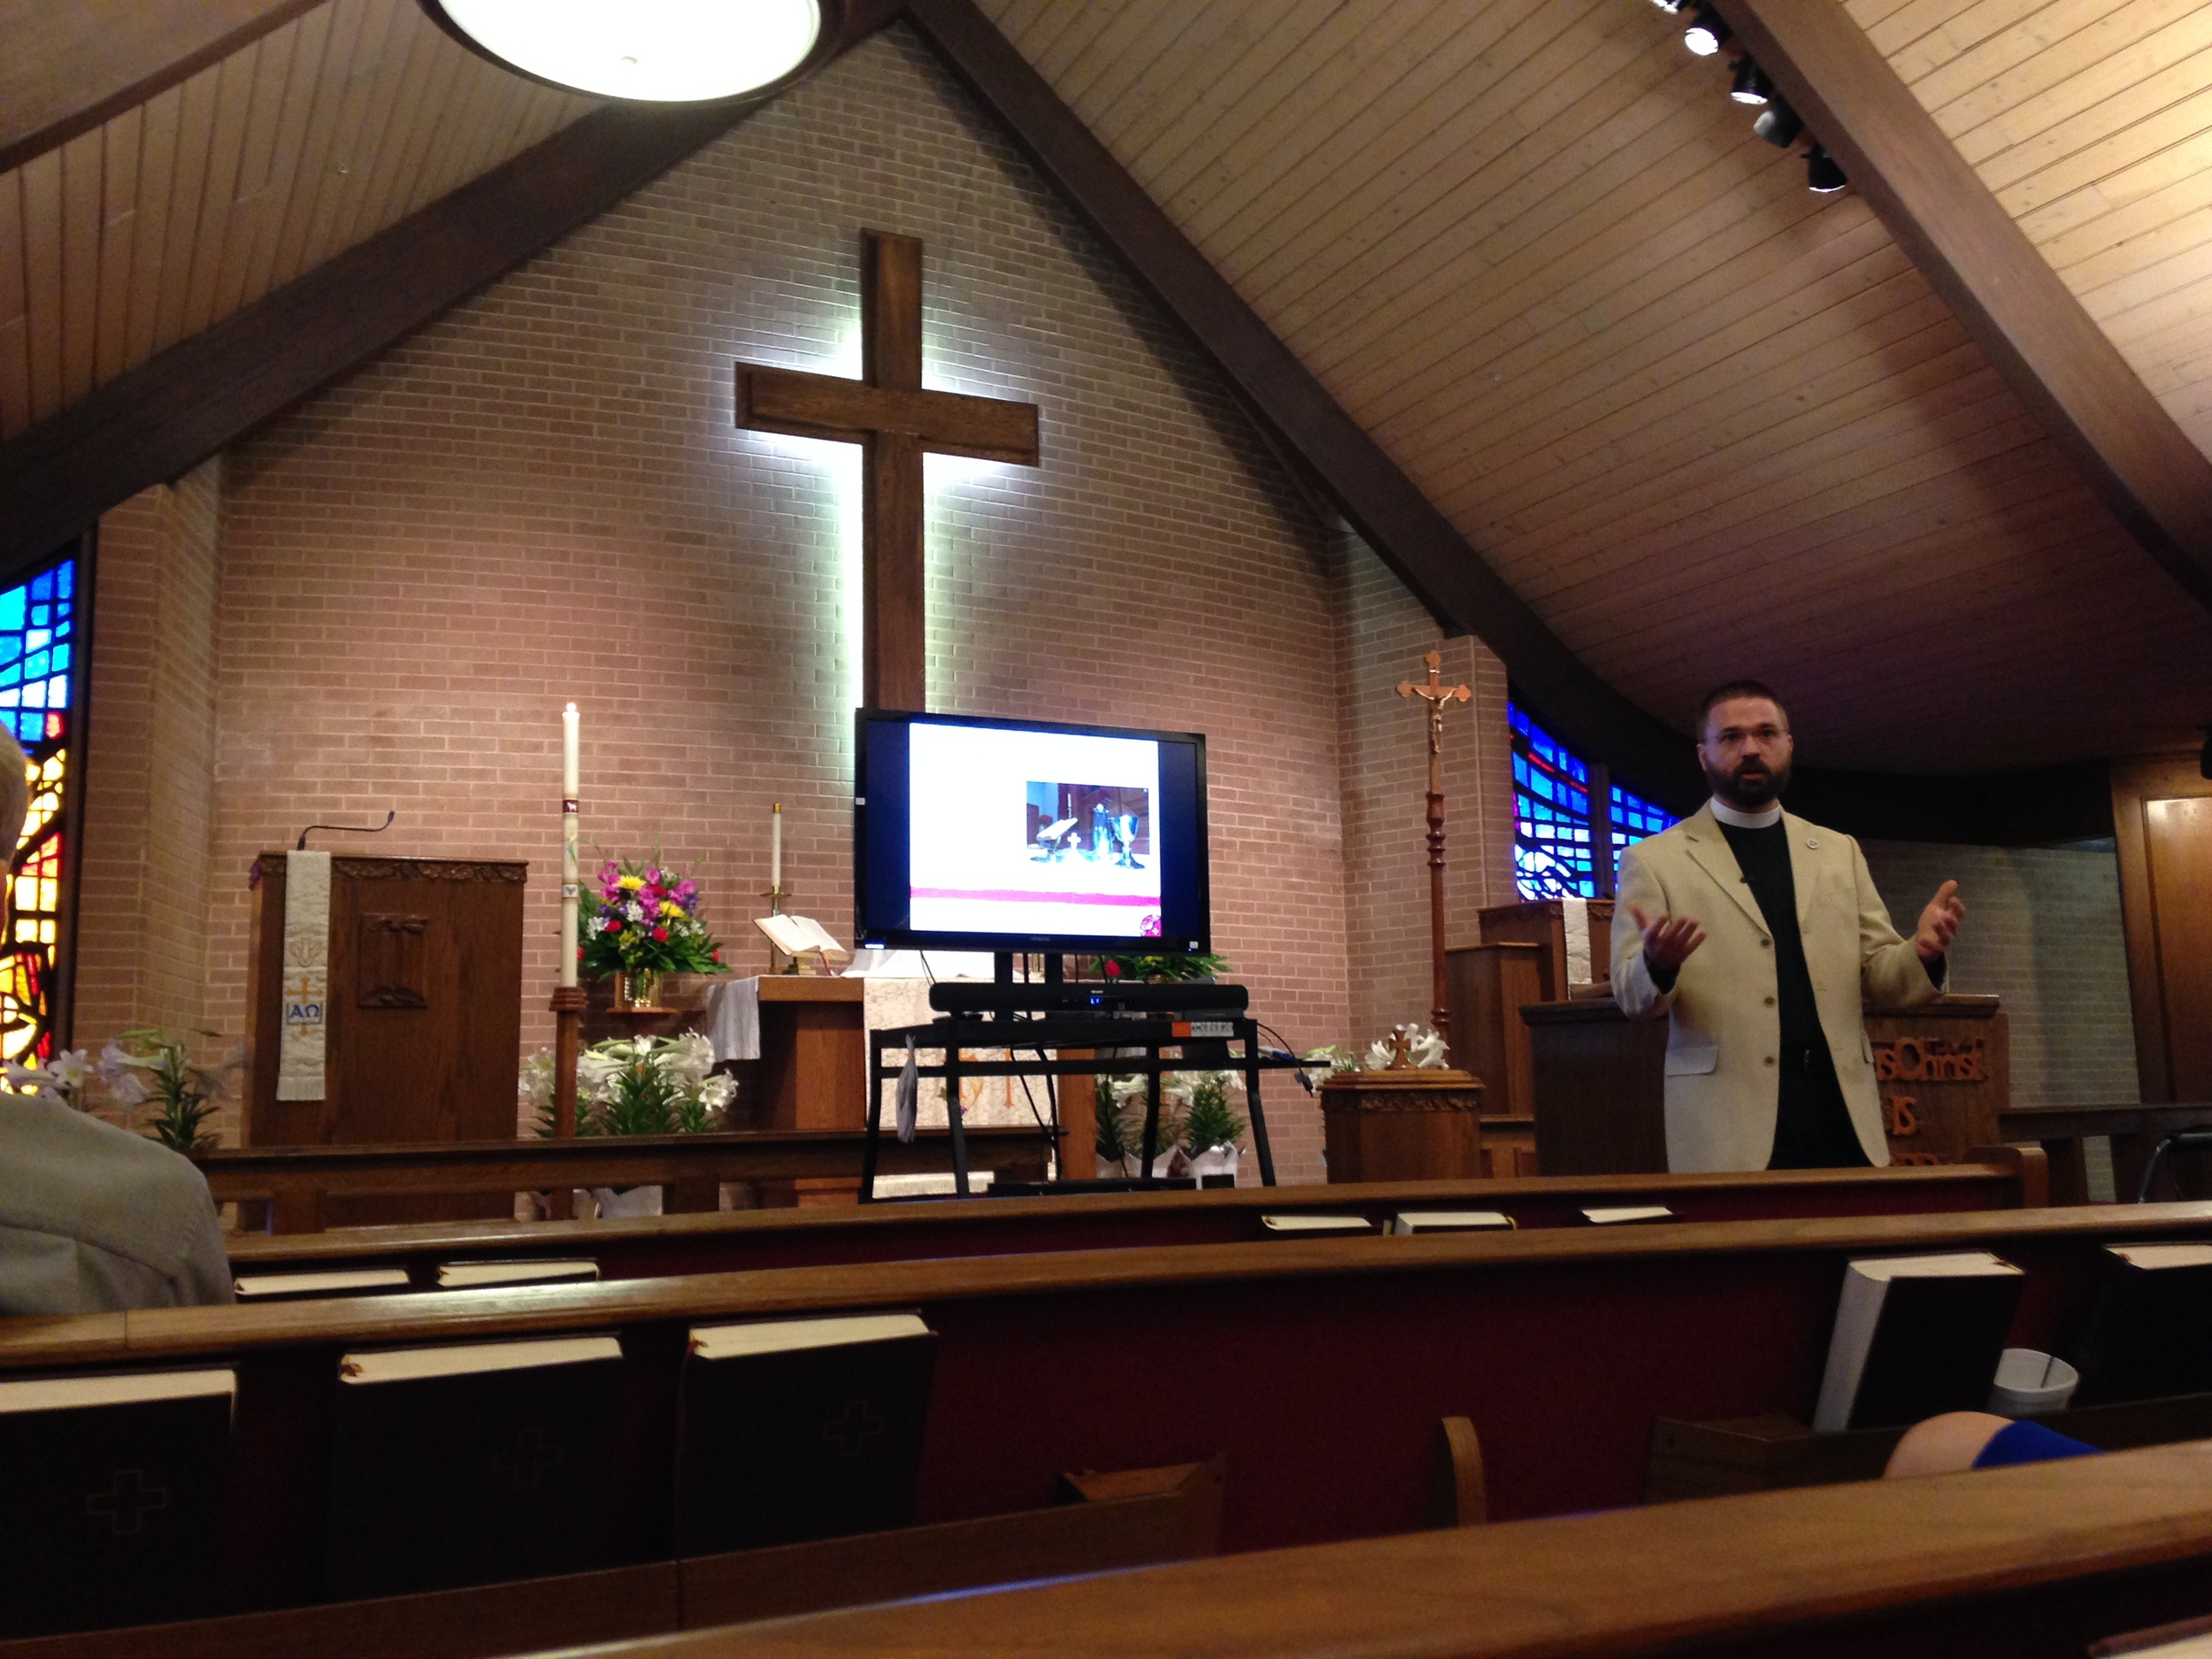 I'm presenting during the Bible Class hour at Faith.